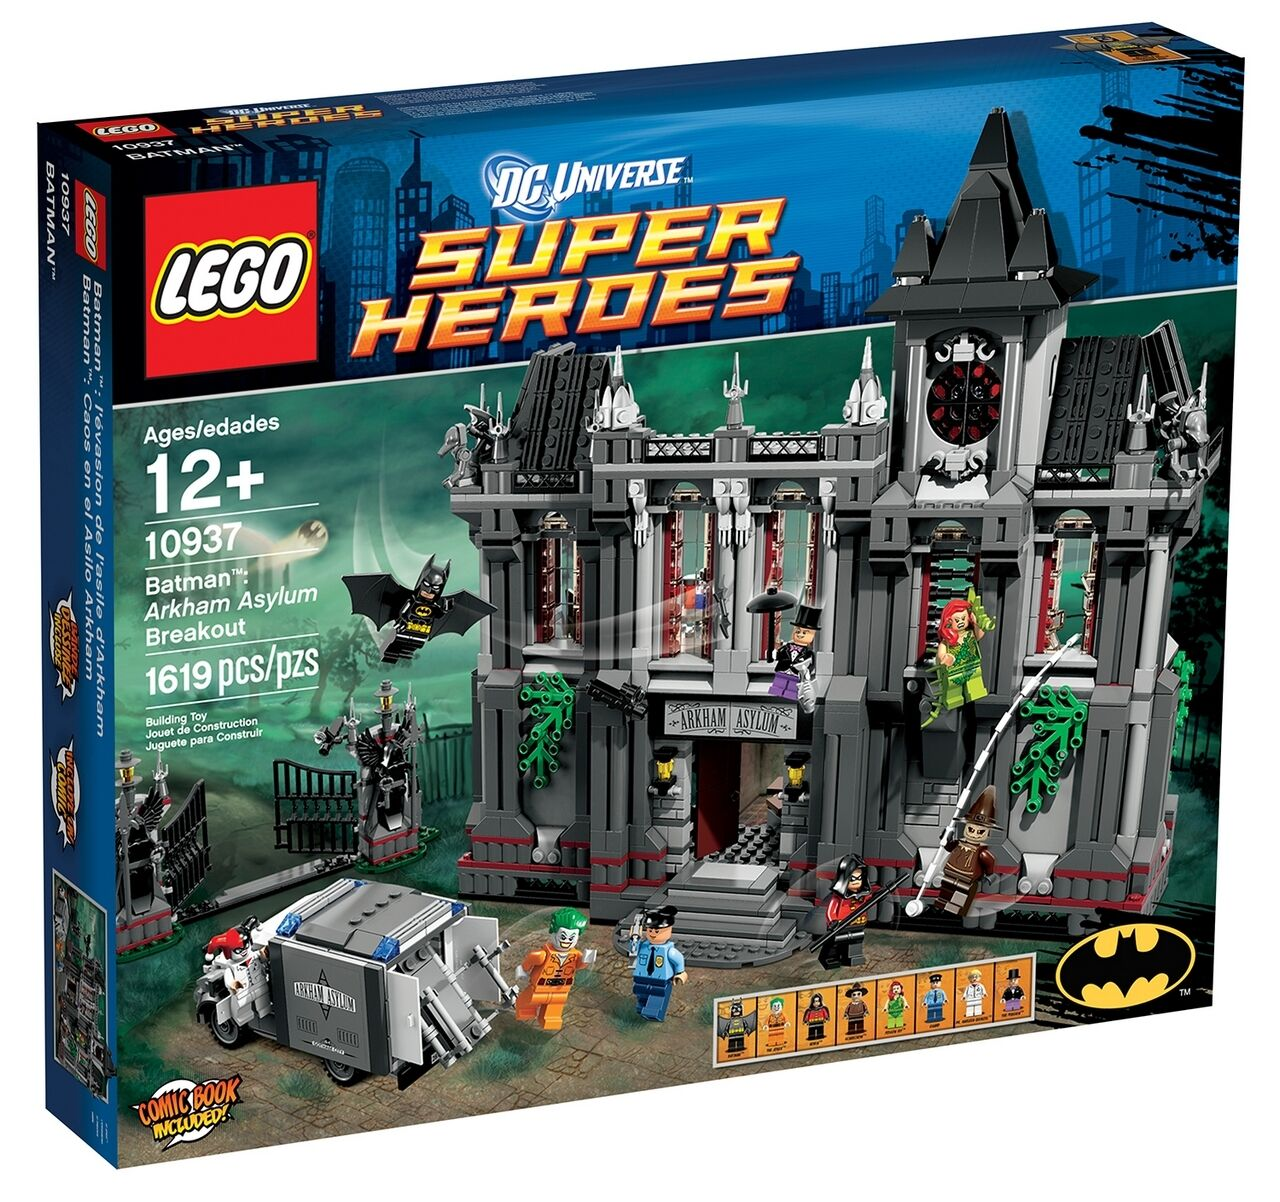 LEGO BATMAN ARKHAM ASYLUM BREAKOUT SET 10937 BRAND NEW NEW NEW IN FACTORY SEALED BOX 33e08c